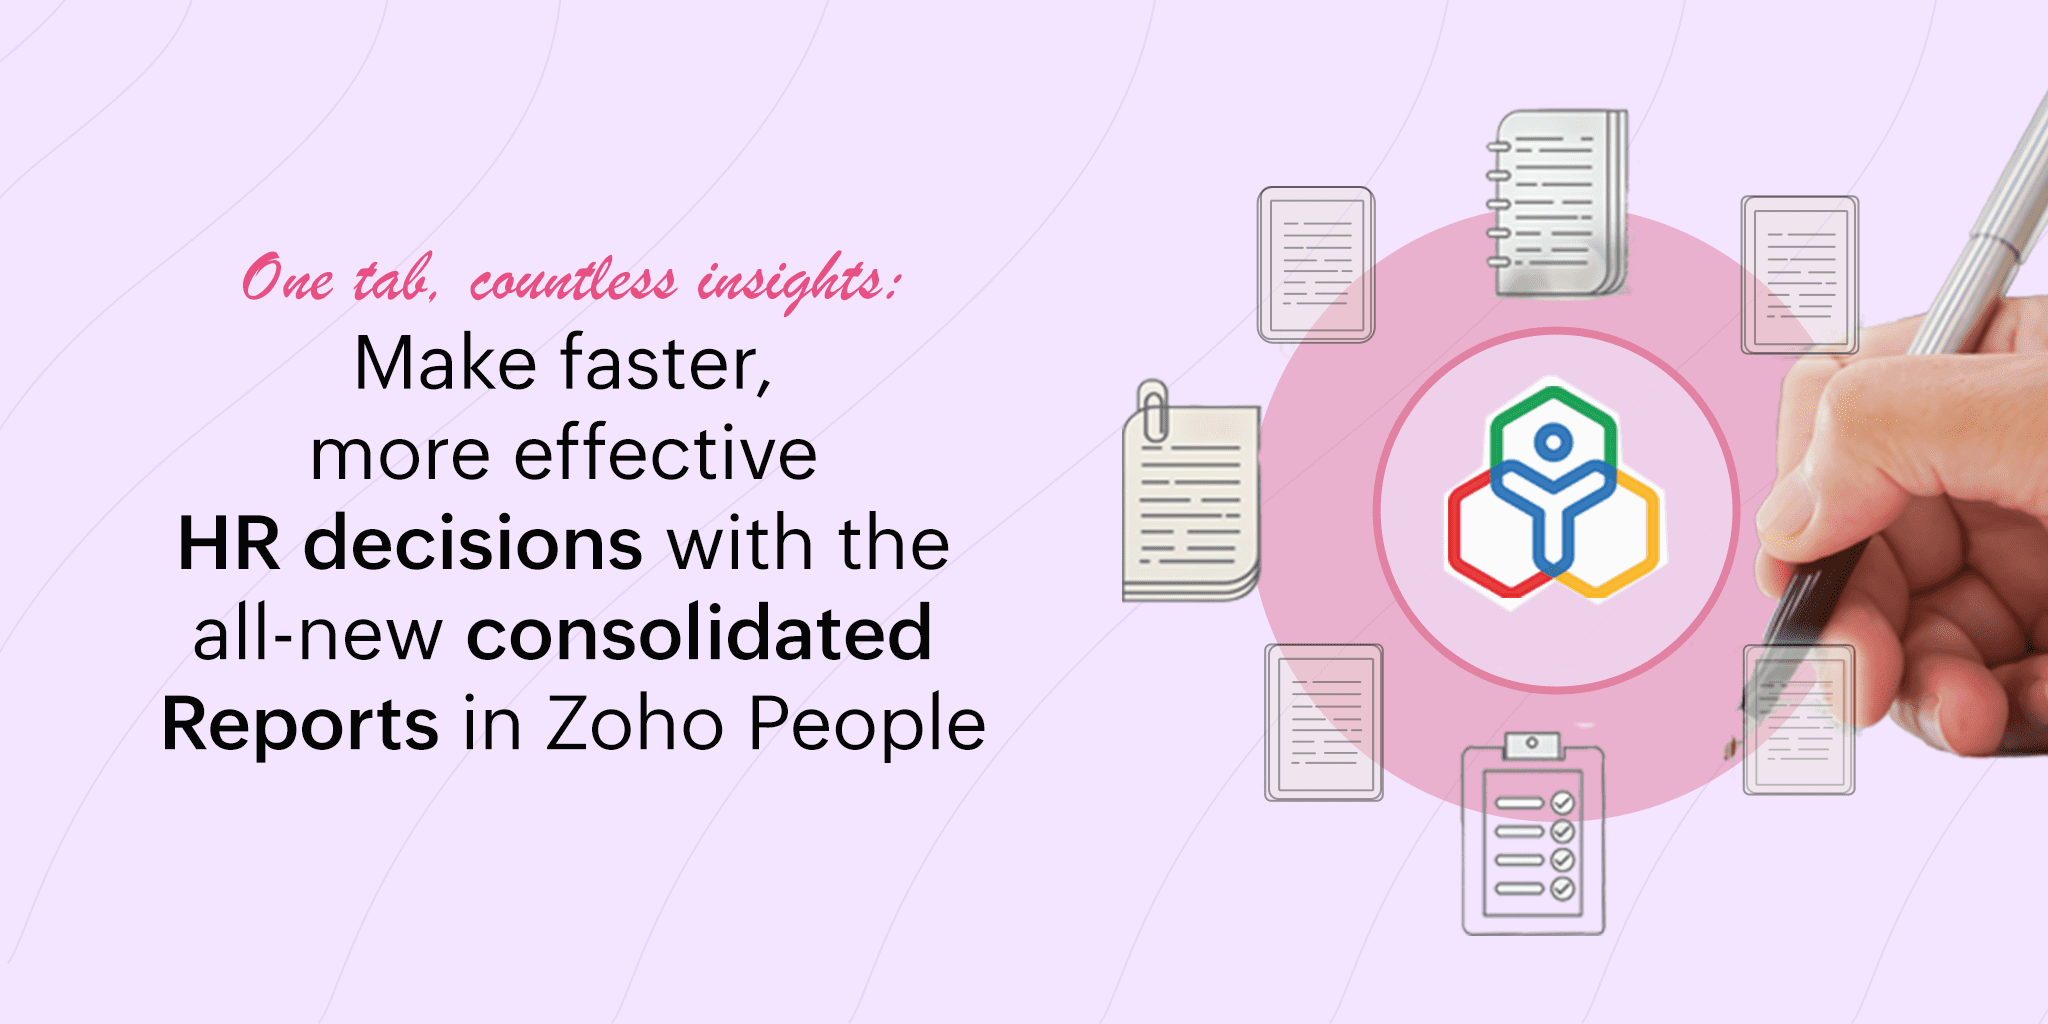 Make faster, more effective HR decisions with the all-new consolidated Reports in Zoho People